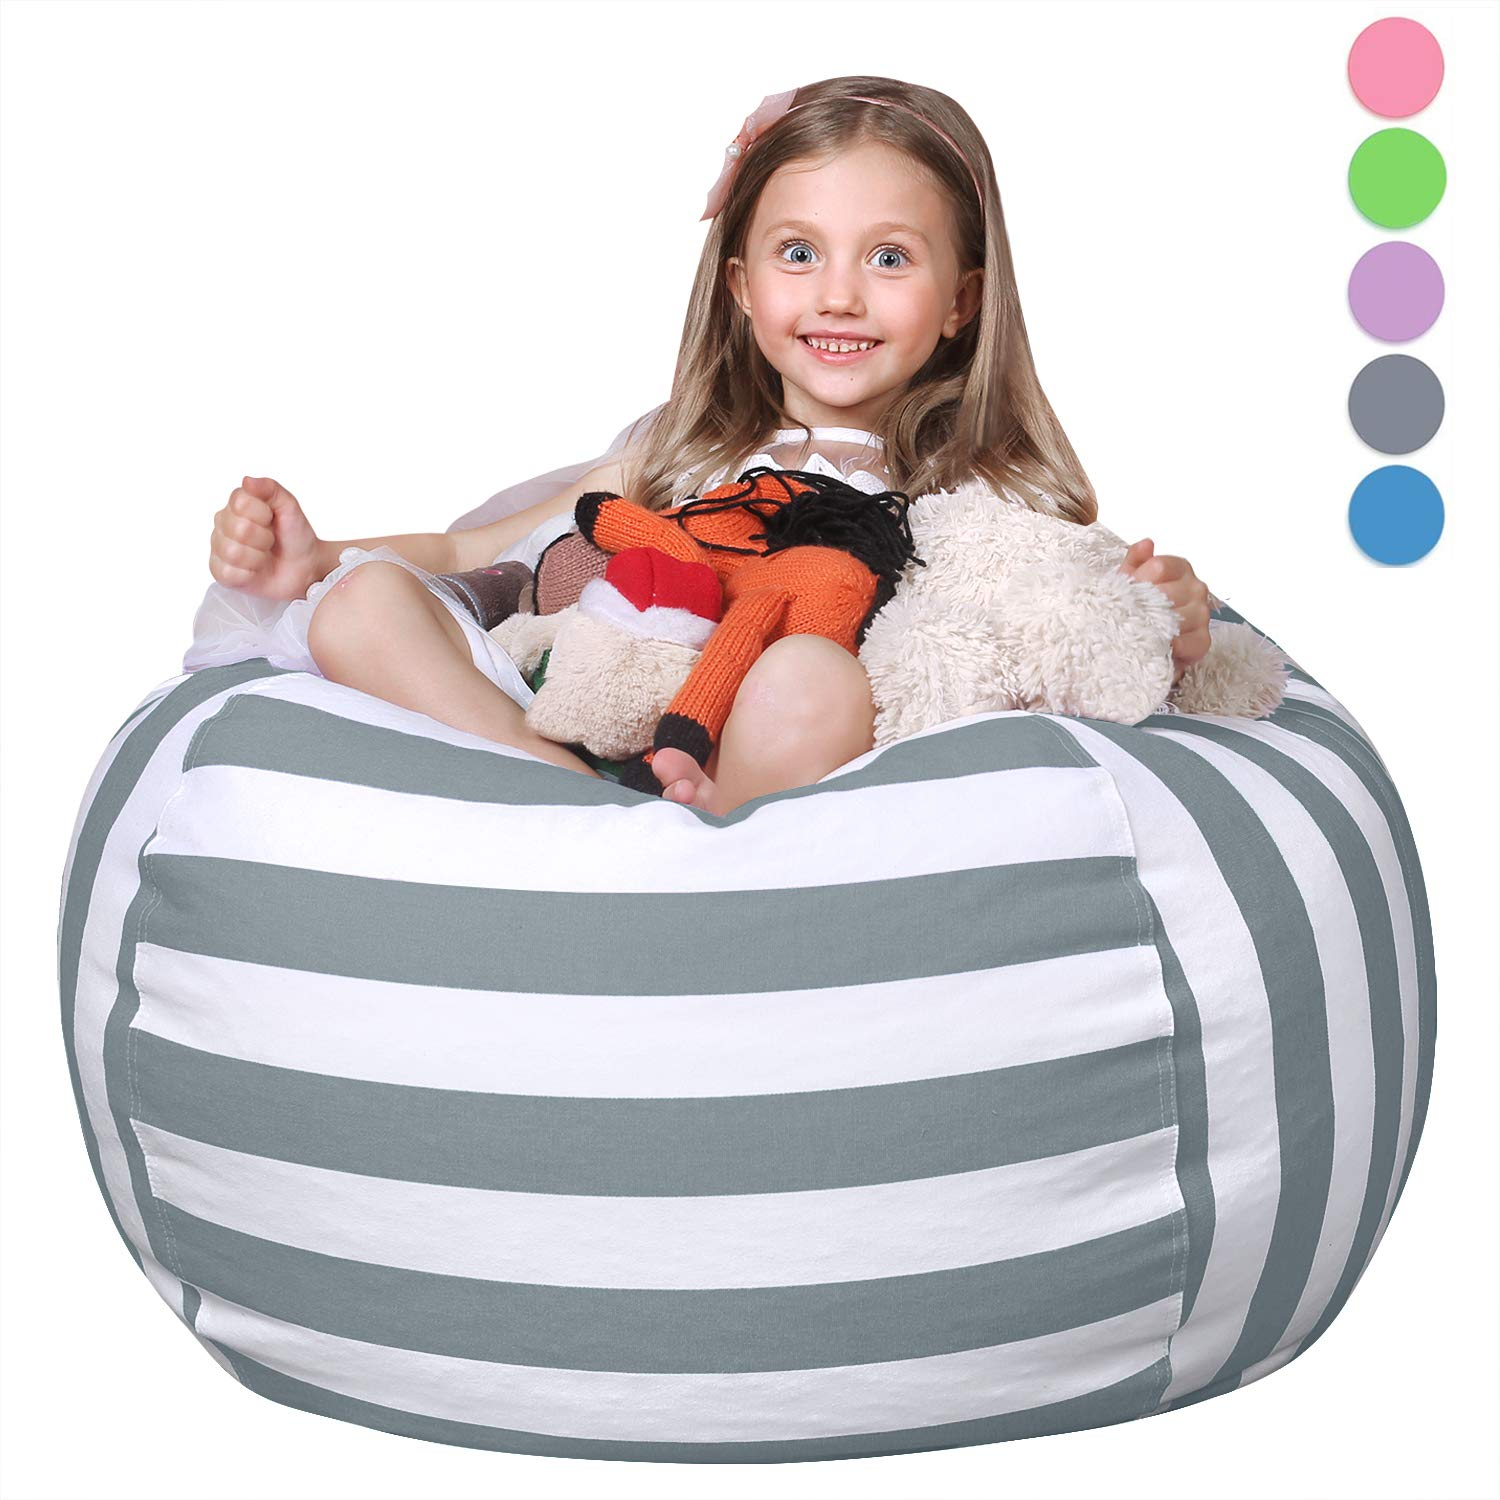 WEKAPO Animal Bean Bag Storage Chair Cover Stuffed for Kids